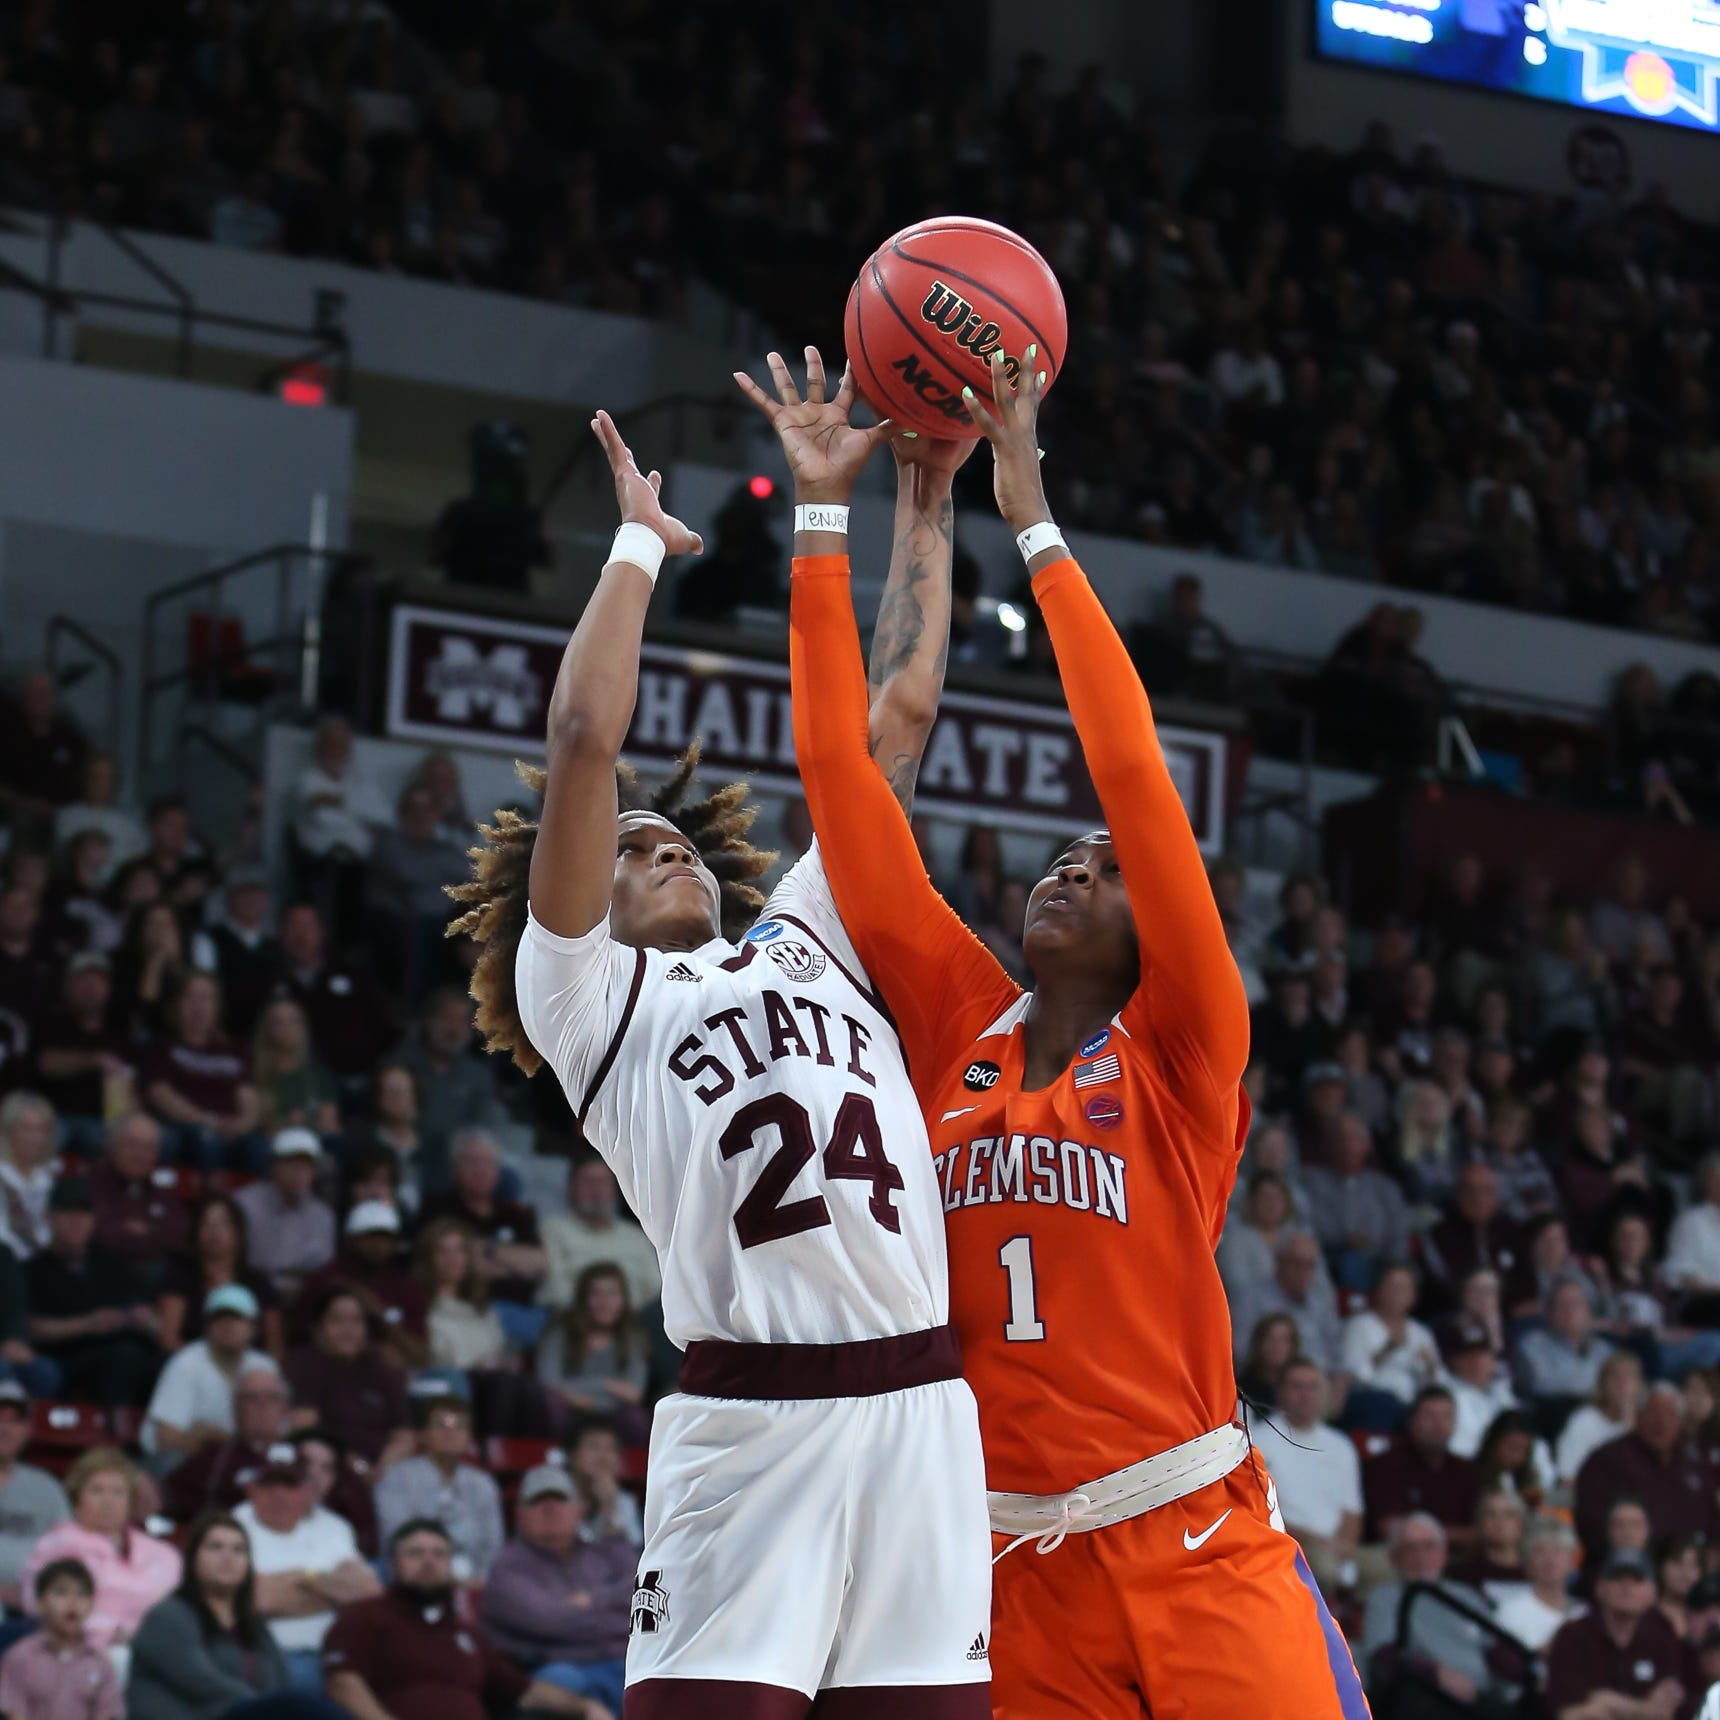 Mississippi State tops Clemson 85-61 for fourth straight trip to Sweet 16